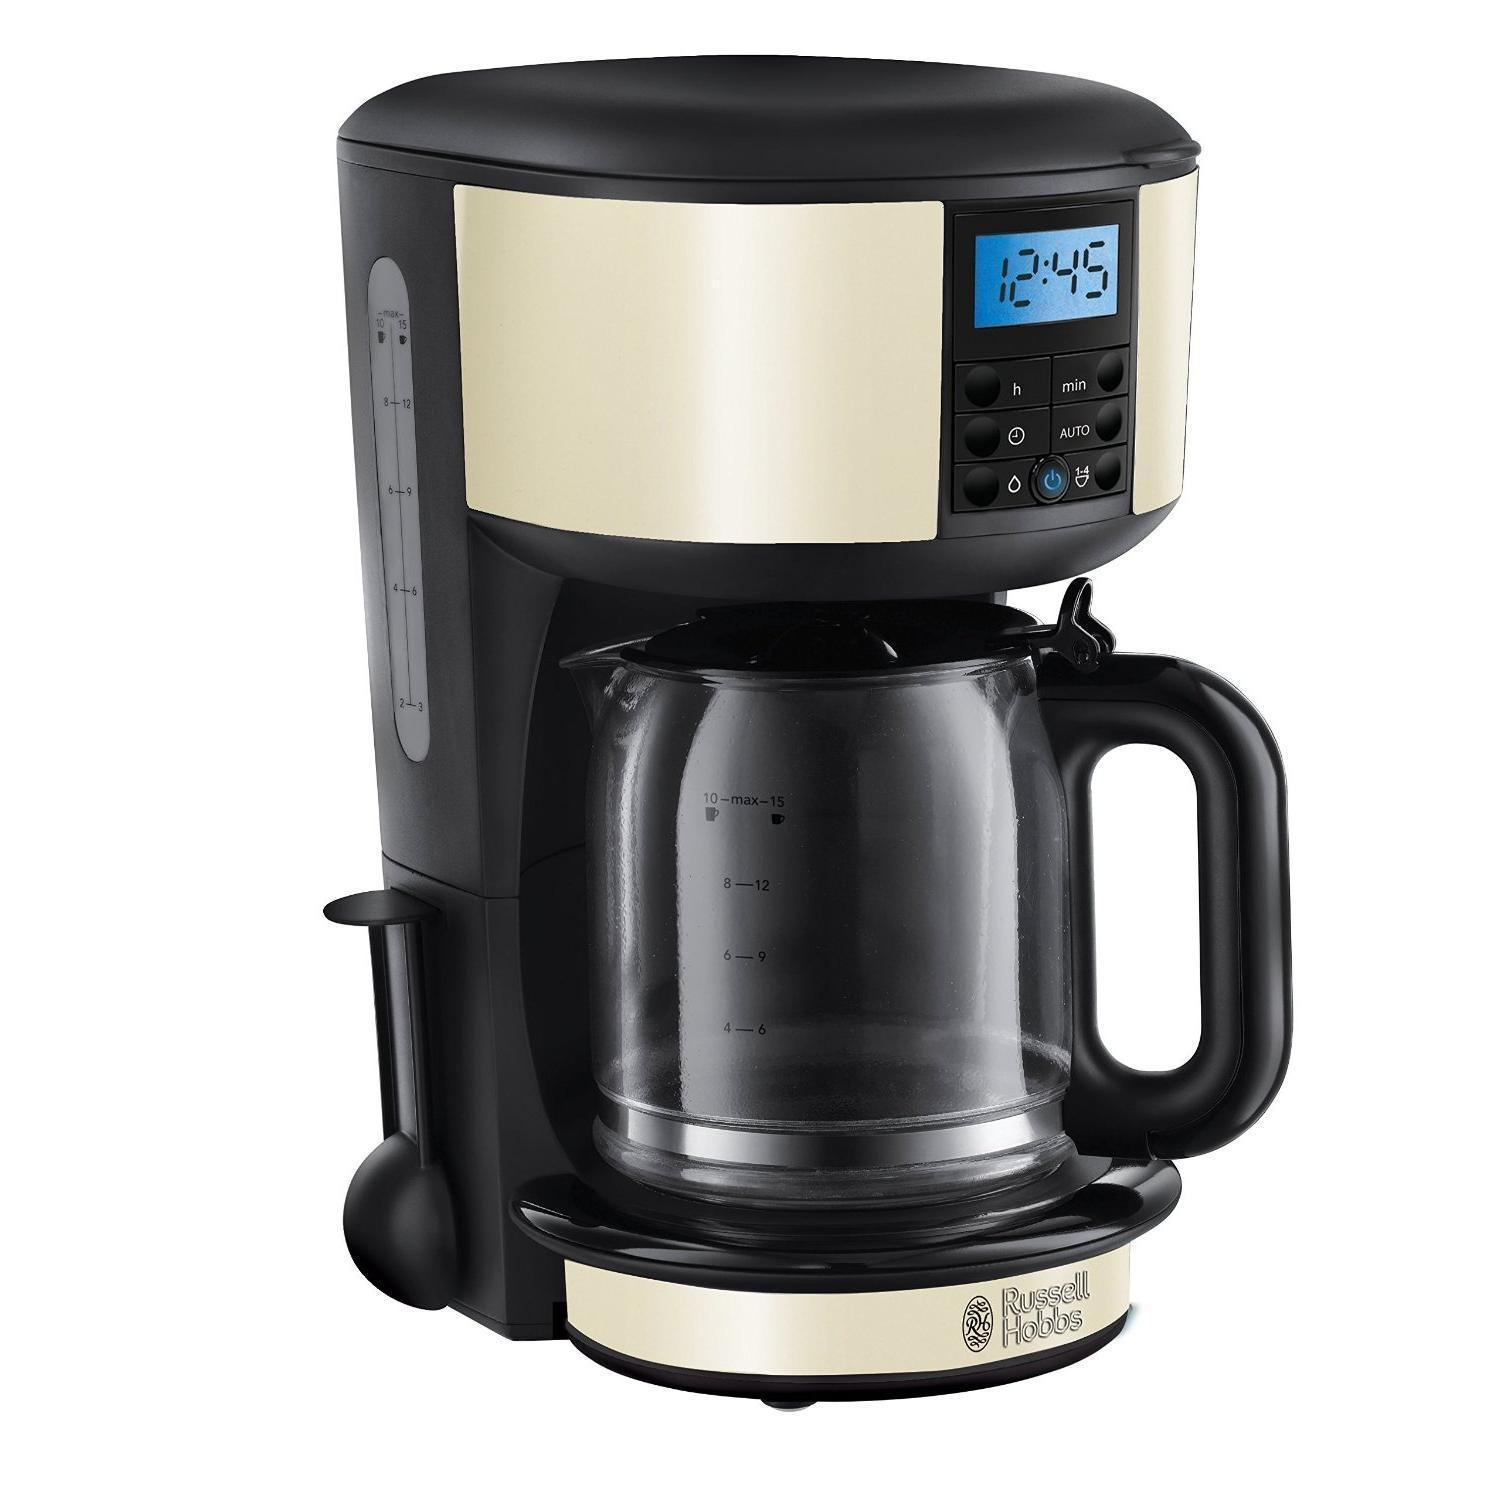 Cafetière Russell Hobbs 20683